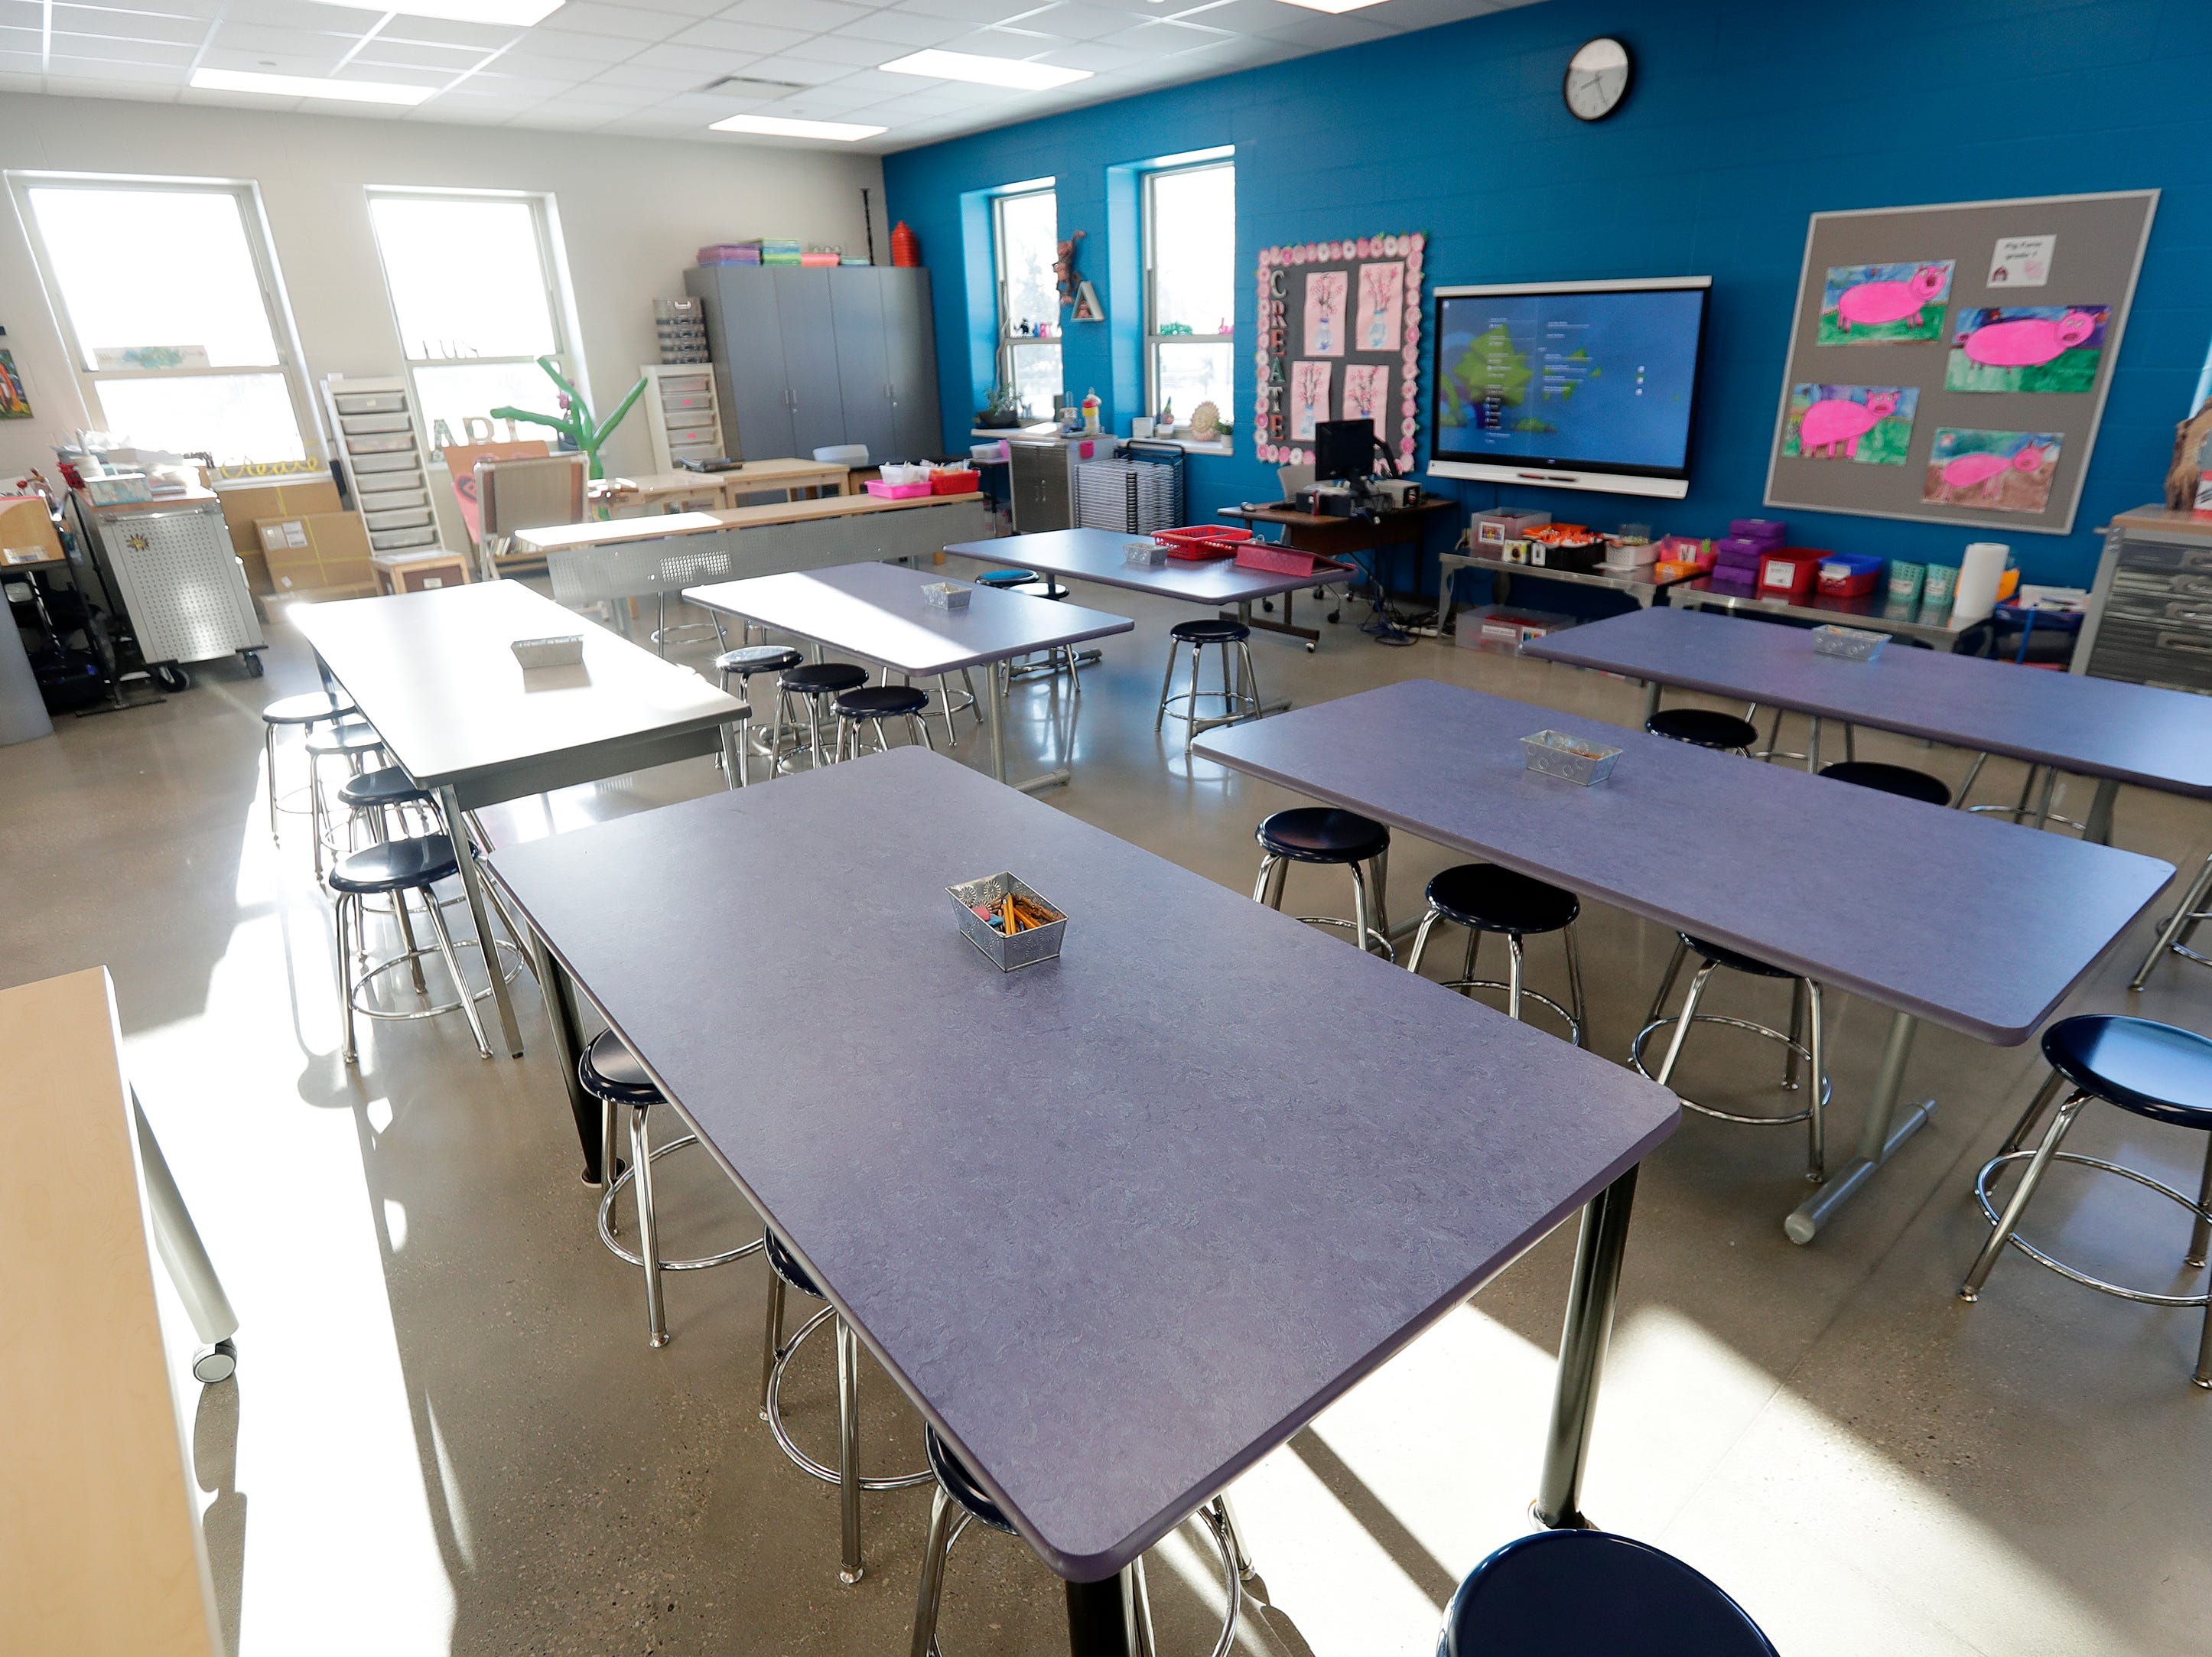 The new art classroom at Webster Elementary is shown on Wednesday, February 13, 2019 in Allouez, Wis.